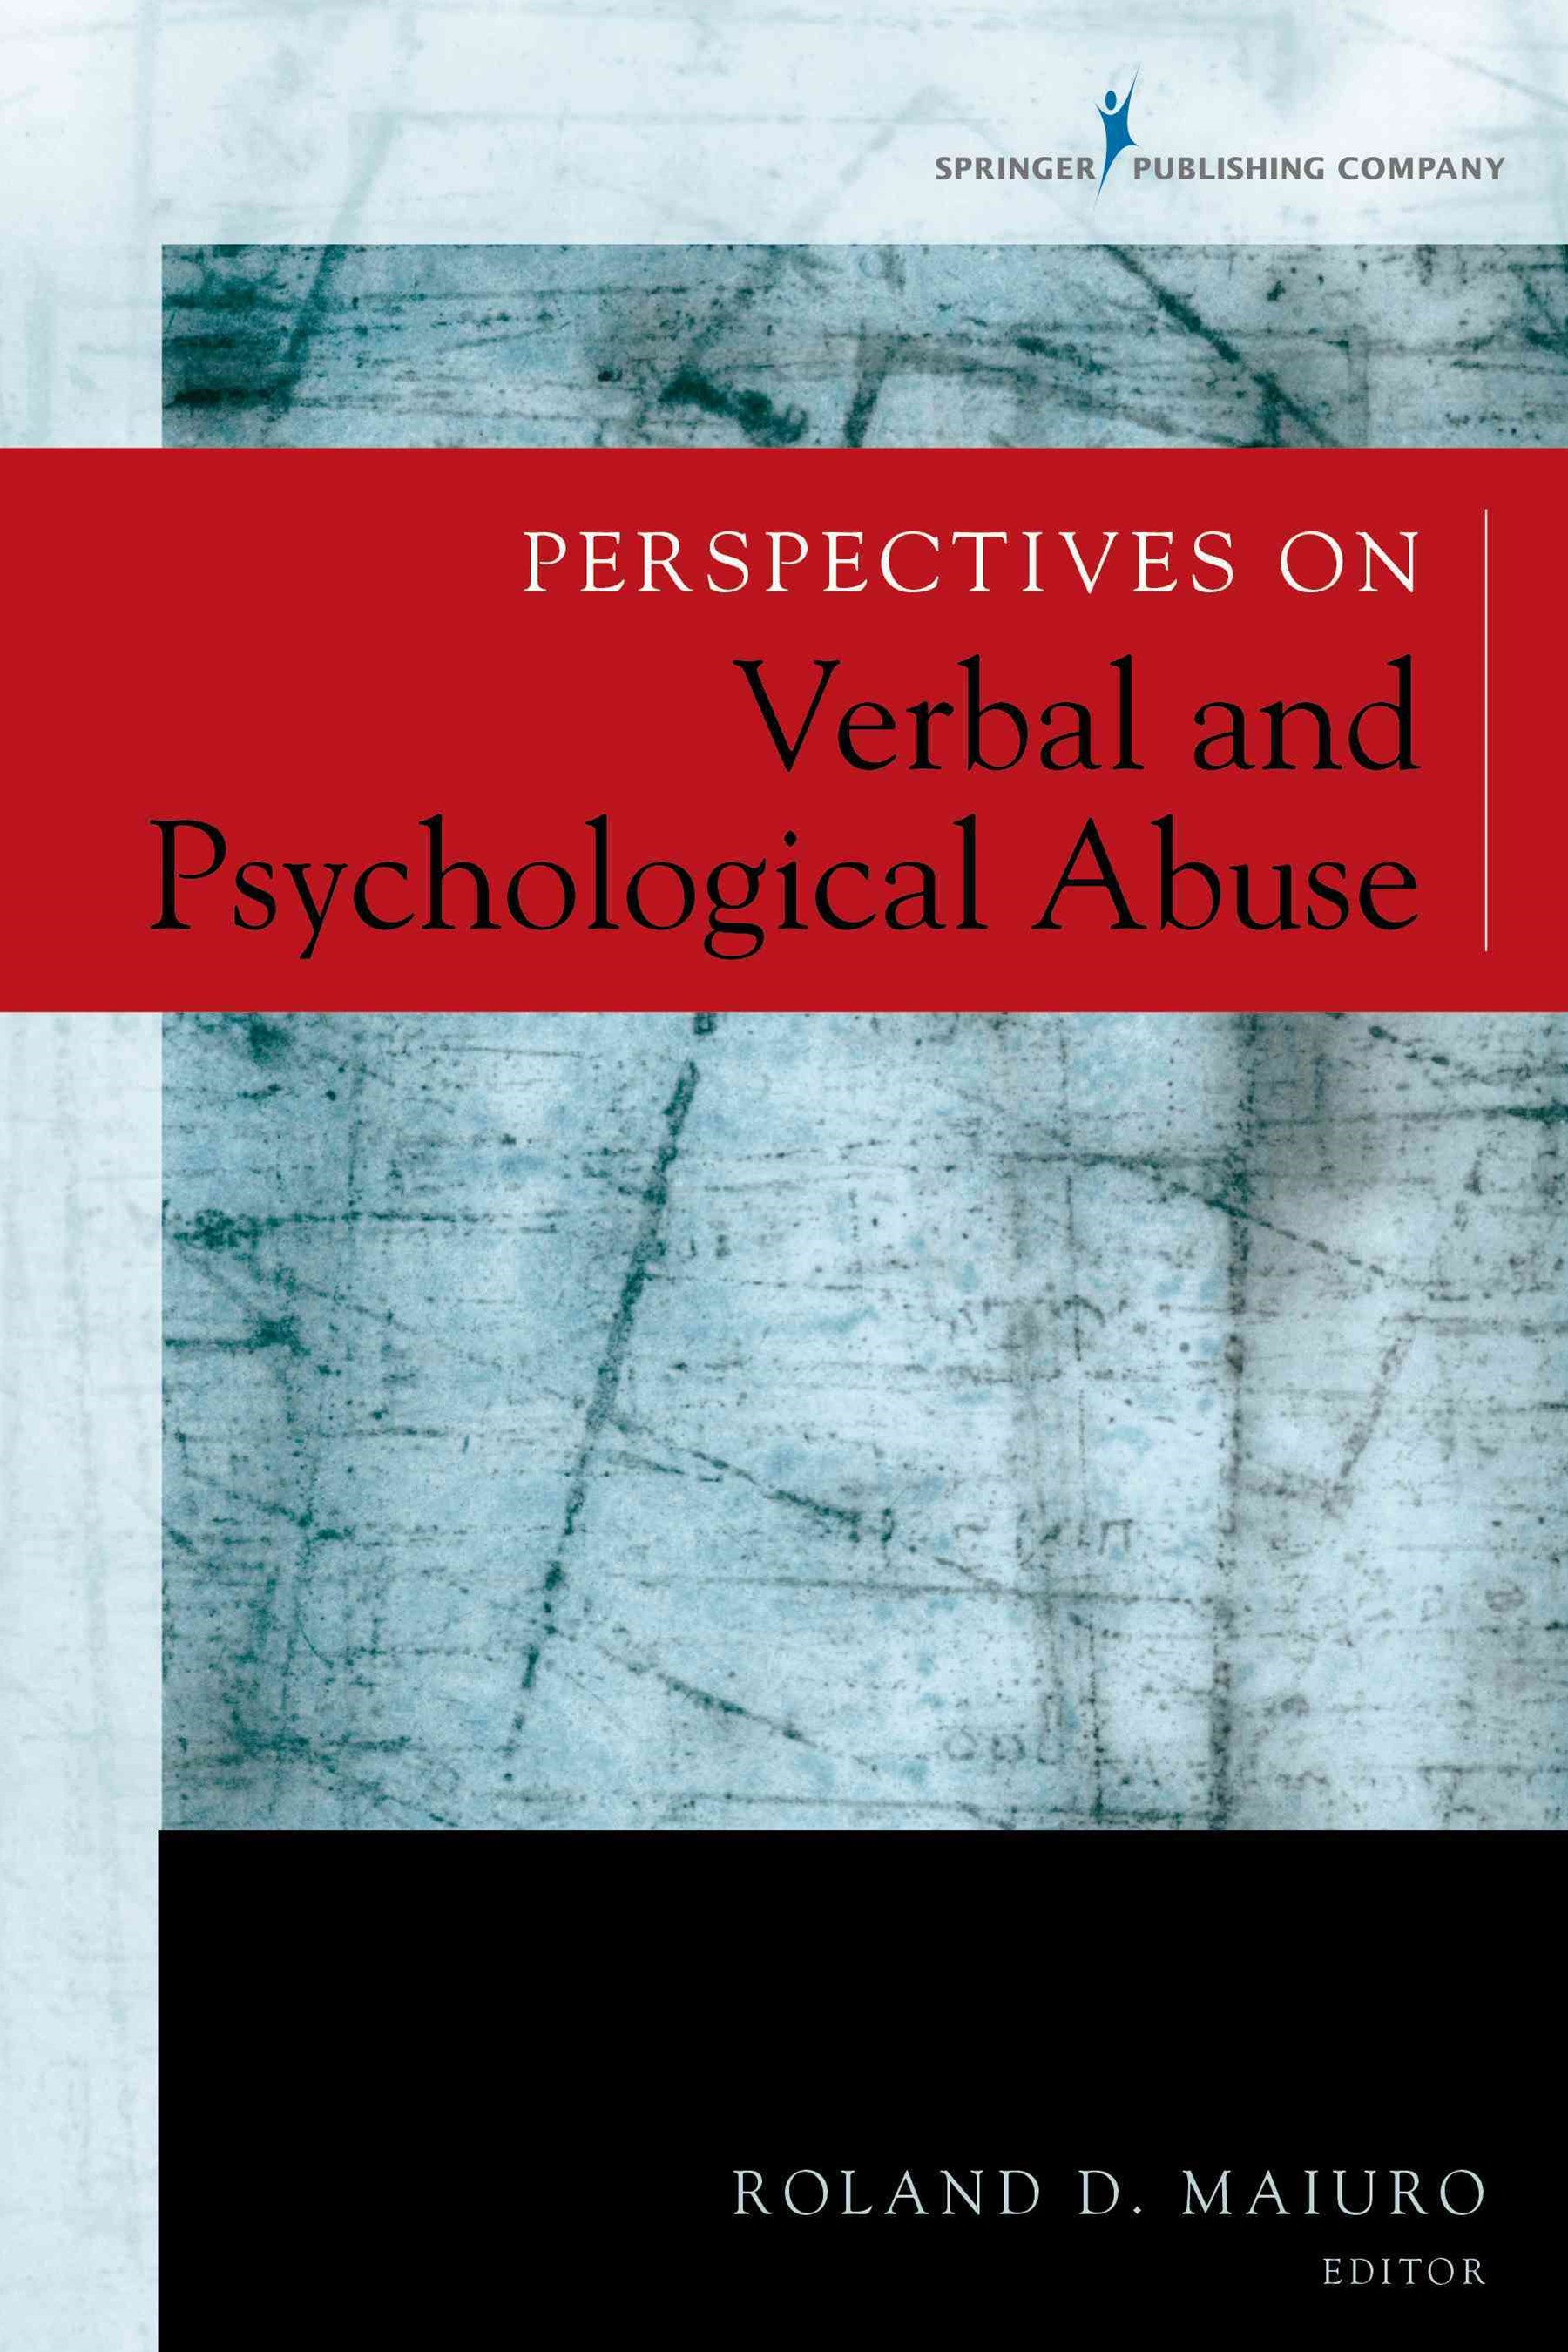 Perspectives on Verbal and Psychological Abuse